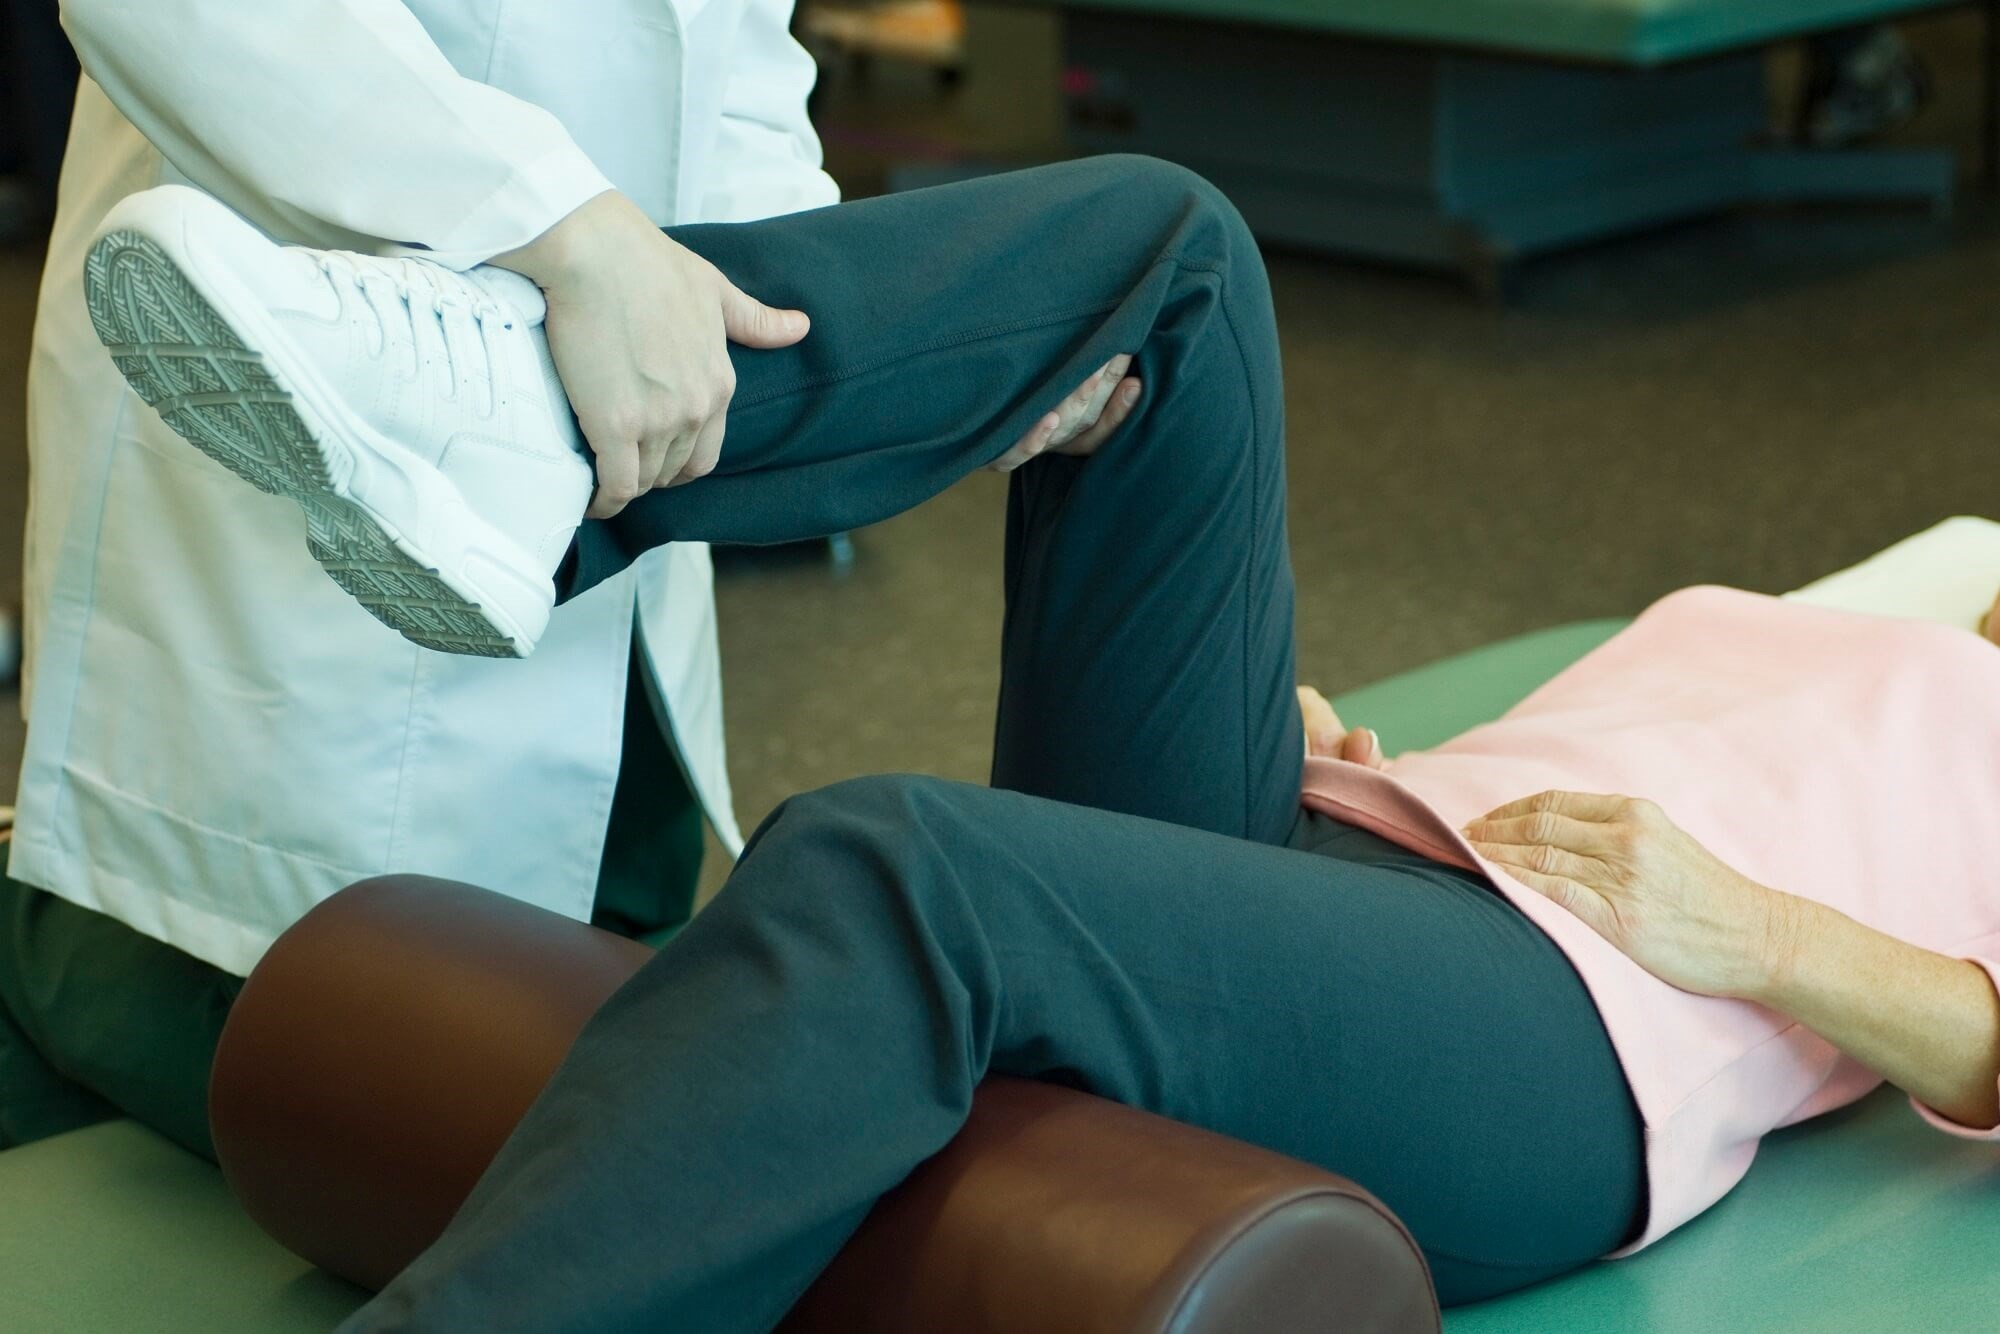 Physical Therapy, Surgery Provide Similar Pain Relief After Meniscal Tear With OA